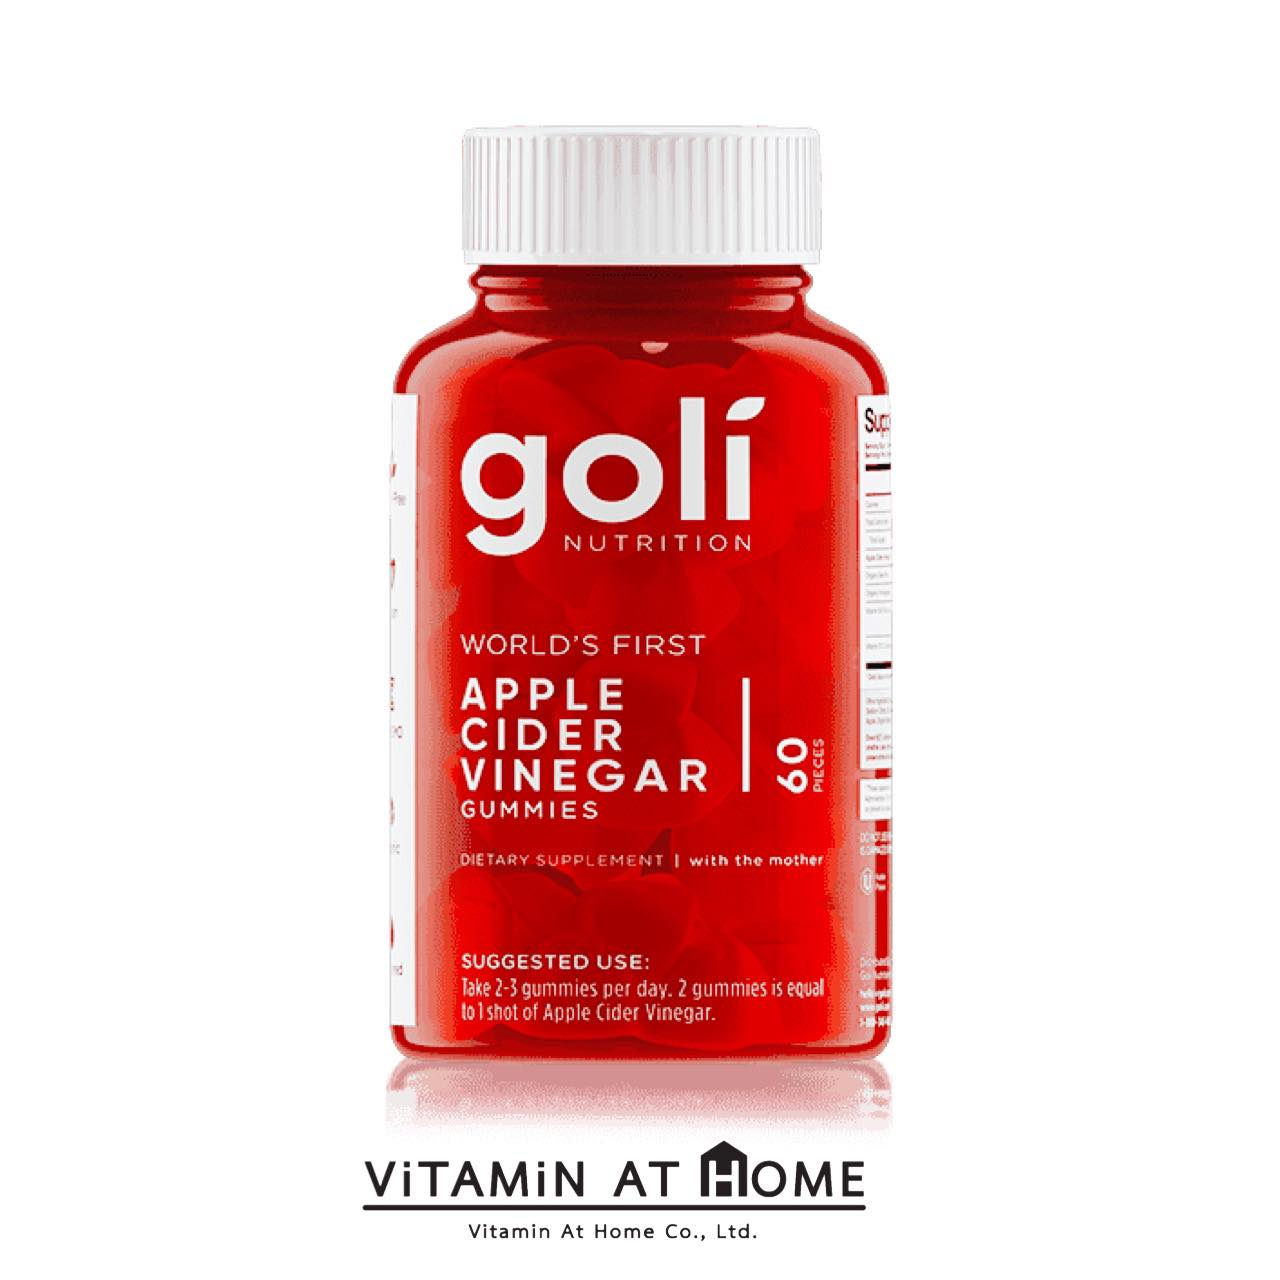 Goli Apple Cider Vinegar Gummies  1 กระปุก (60's)